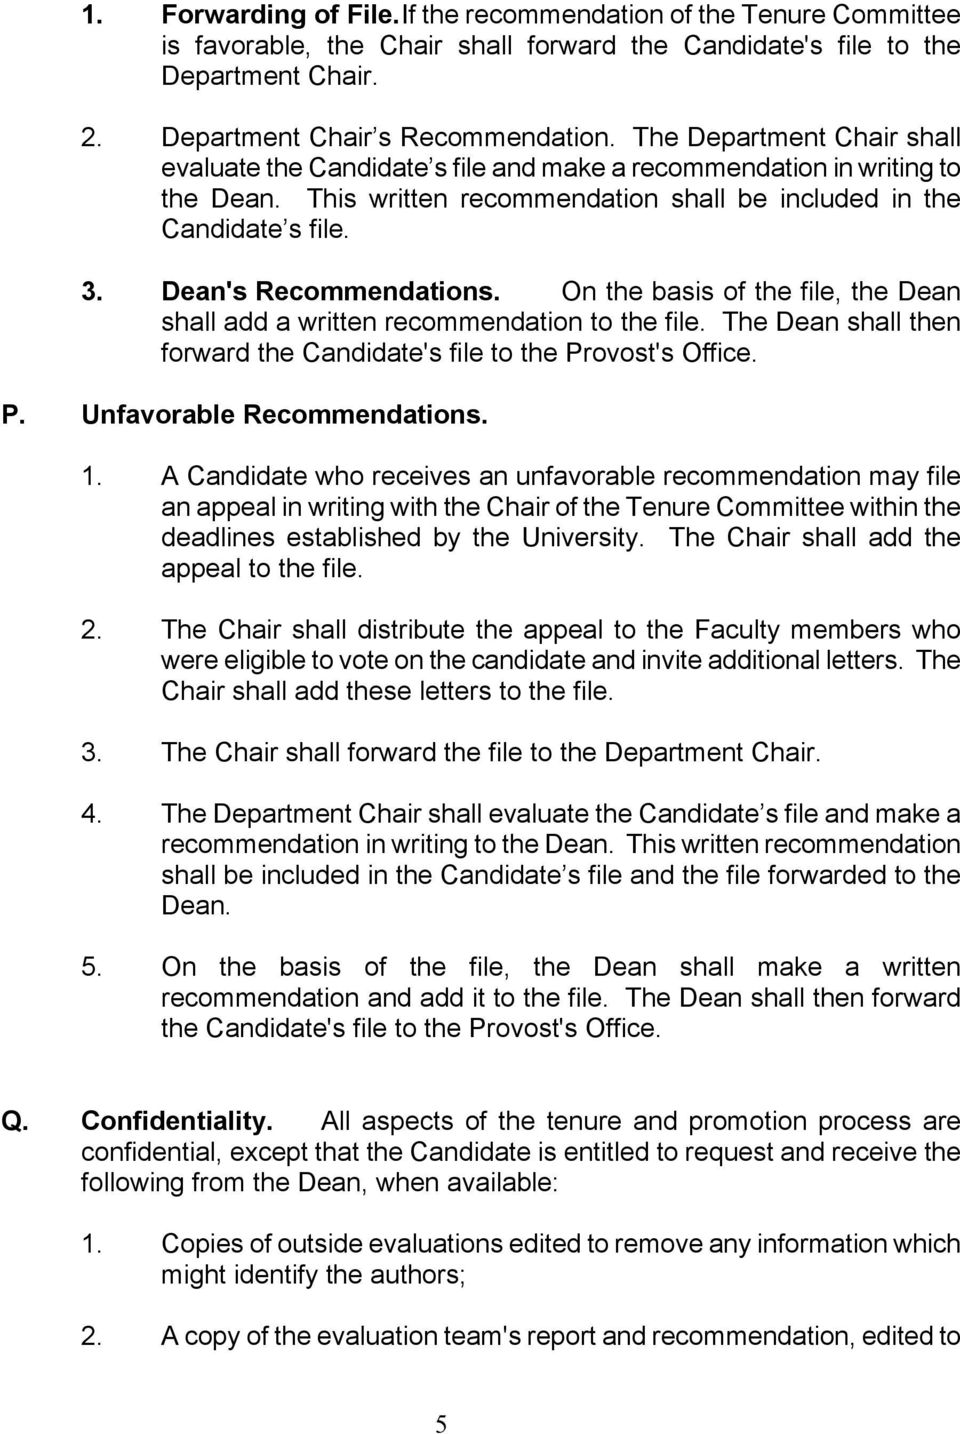 Dean's Recommendations. On the basis of the file, the Dean shall add a written recommendation to the file. The Dean shall then forward the Candidate's file to the Provost's Office. P. Unfavorable Recommendations.